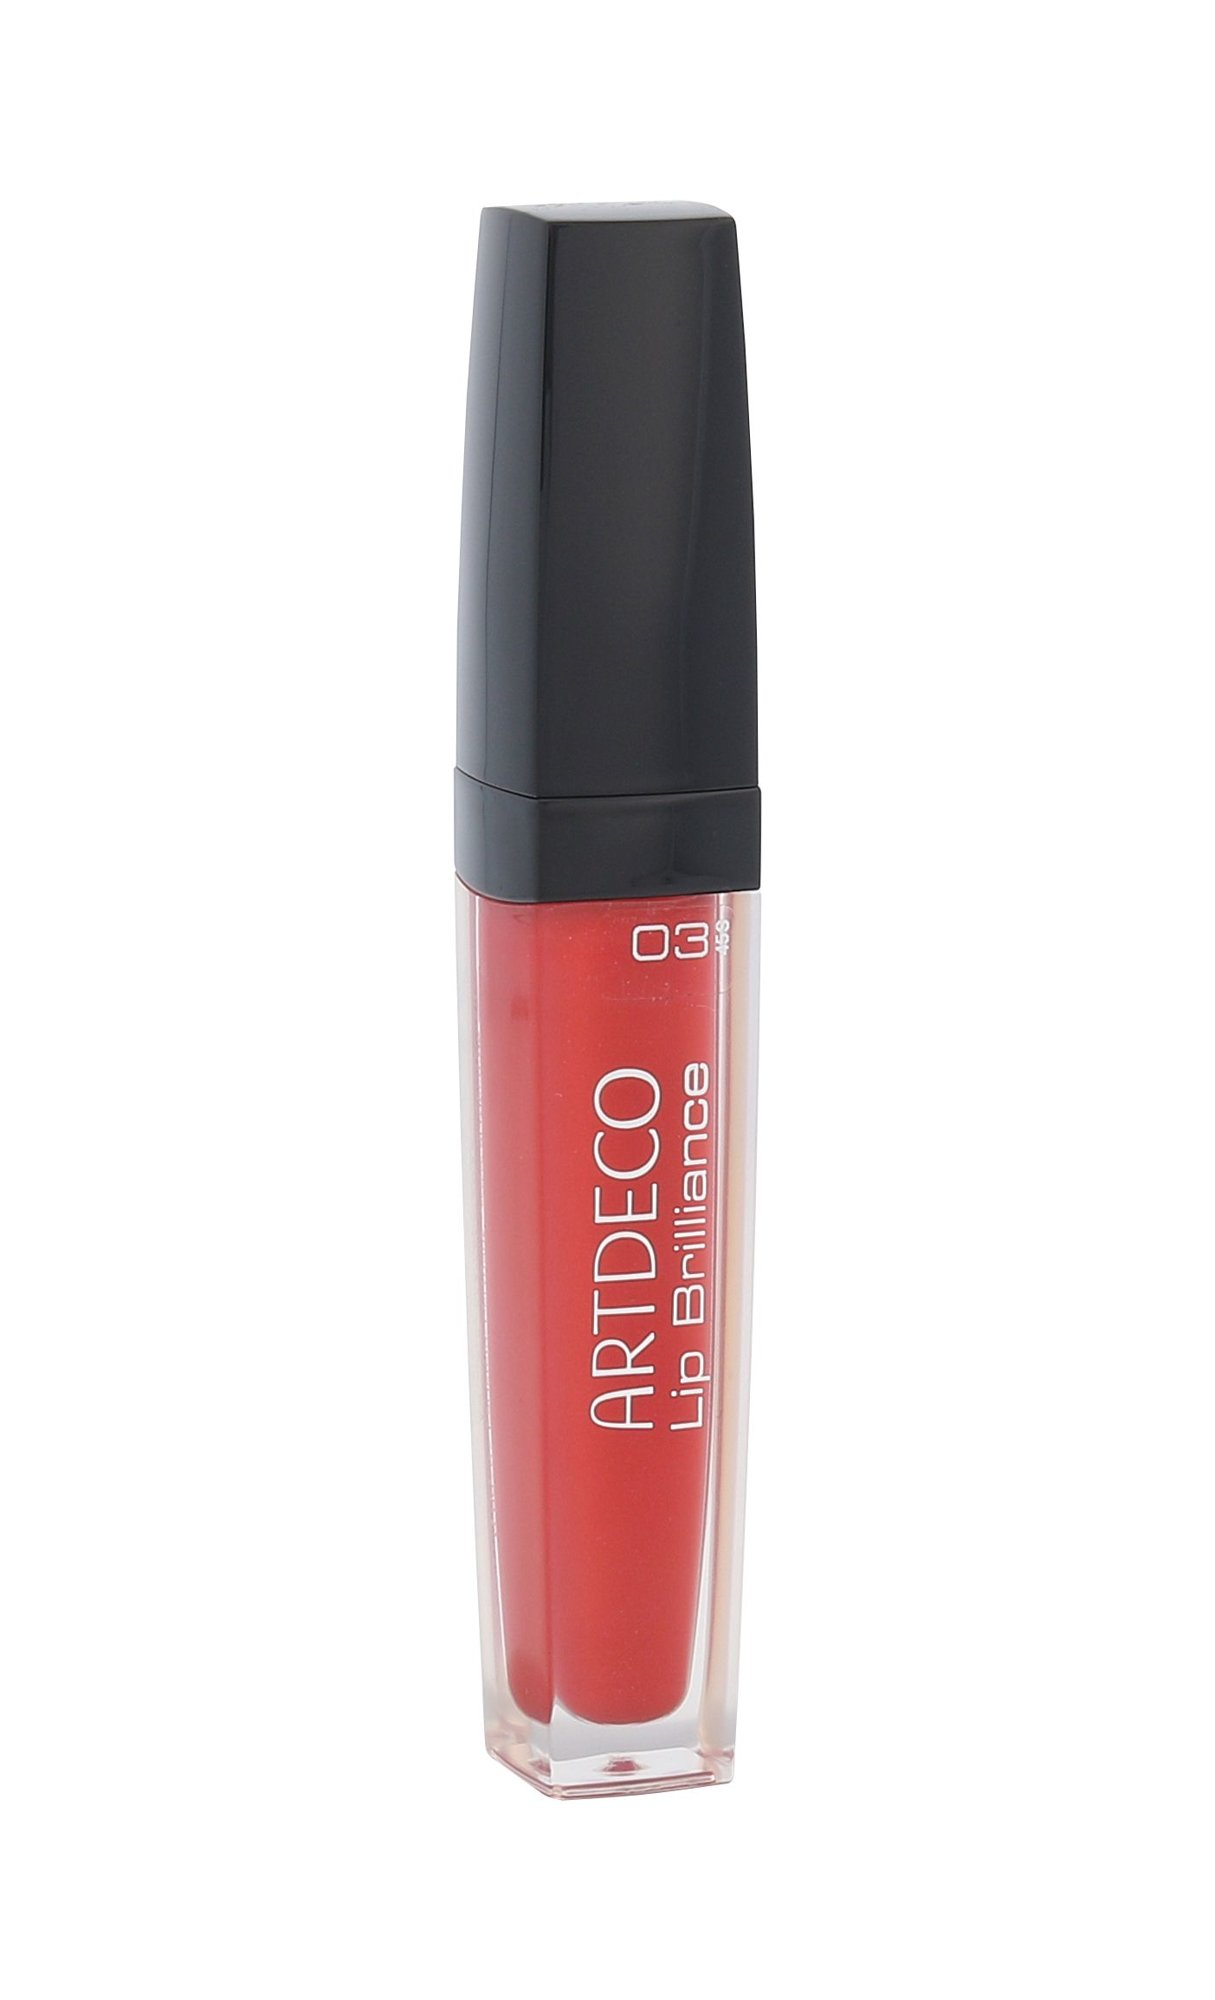 Artdeco Lip Brilliance Cosmetic 5ml 03 Brilliant Strawberry Red